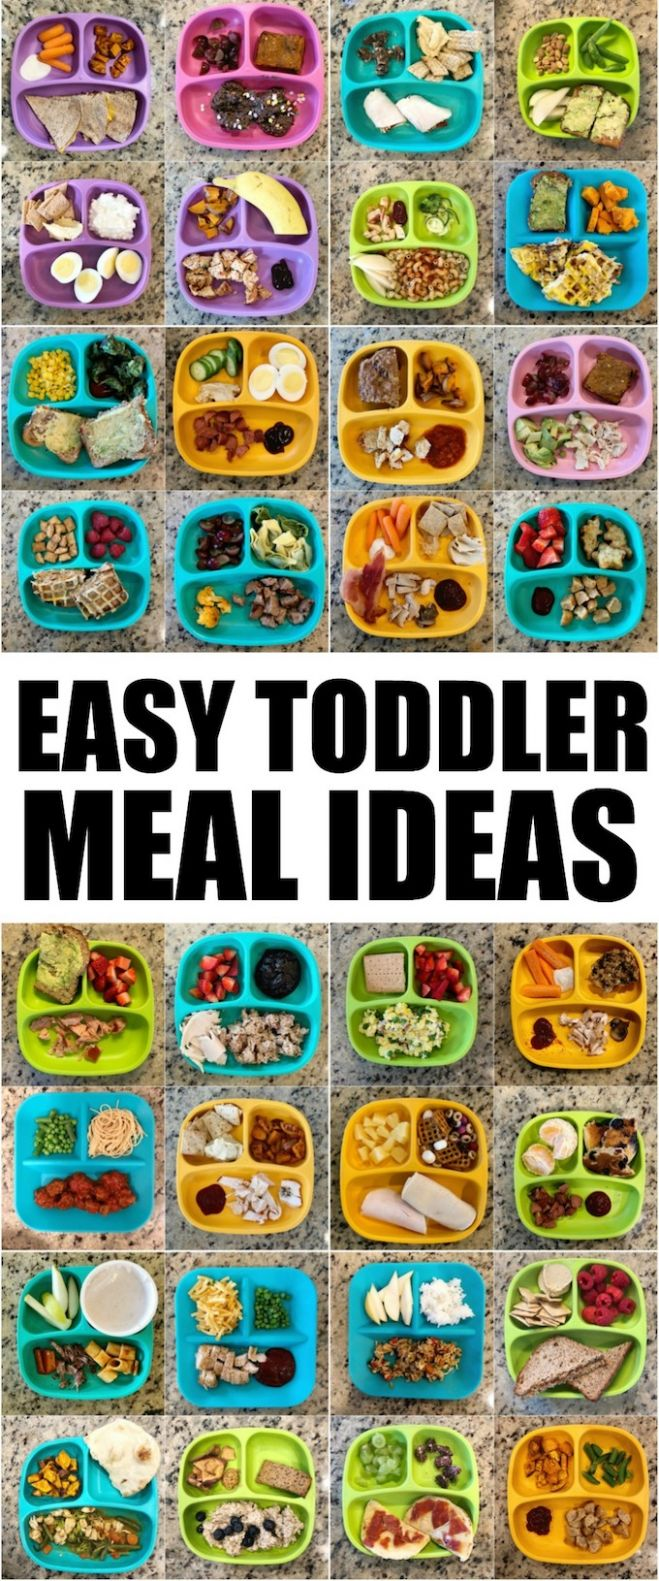 Toddler Meal Ideas - Simple Recipes To Make With Toddlers